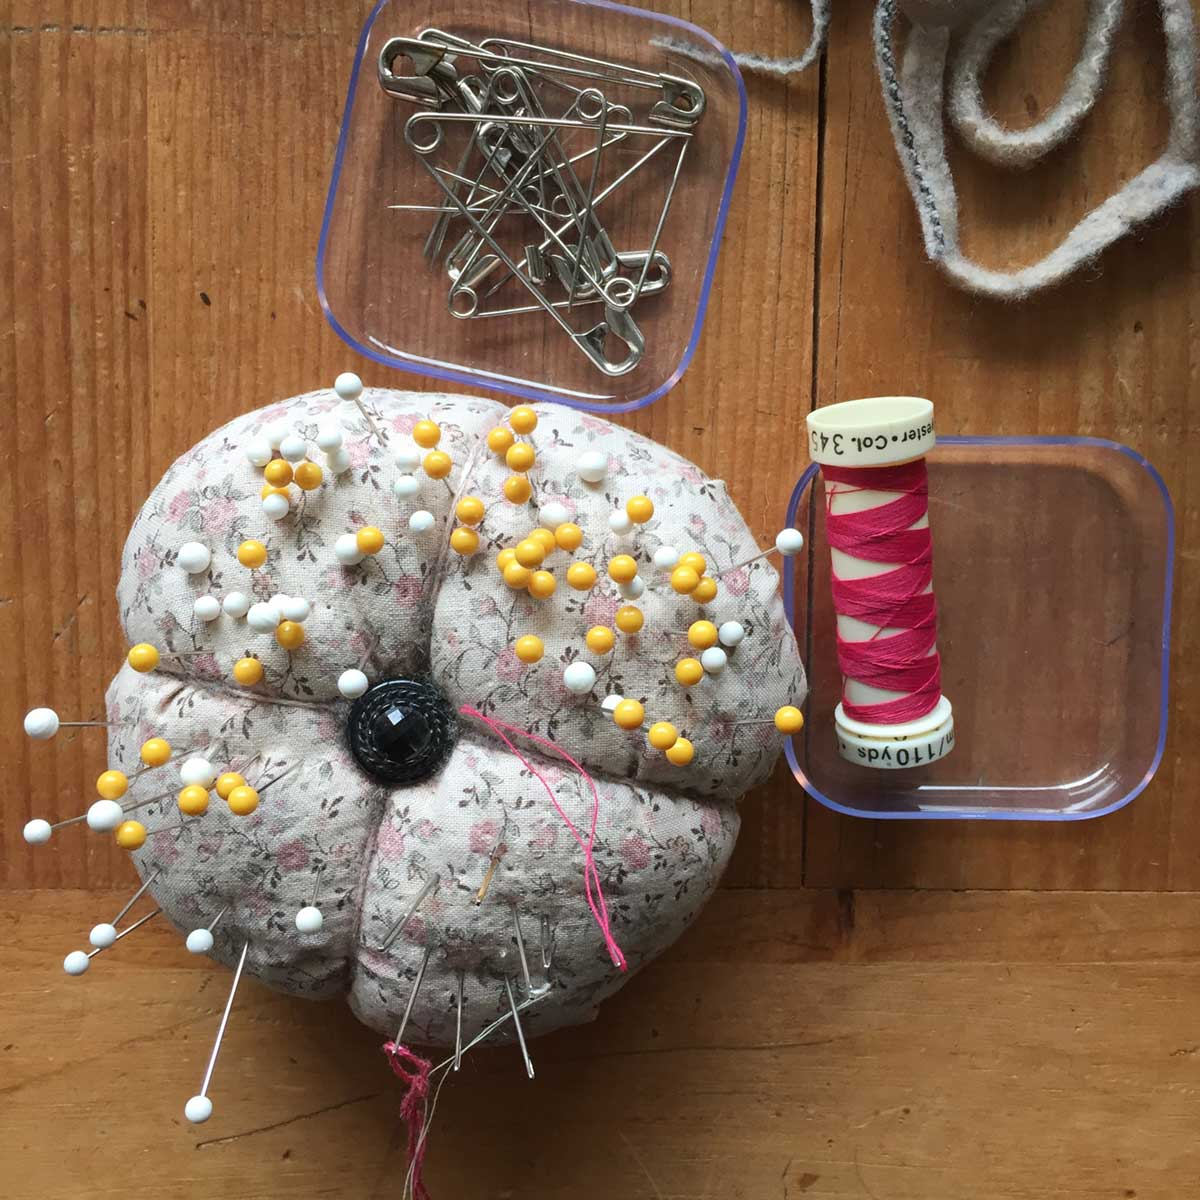 Pin cushion, thread and pins for making hooked rugs